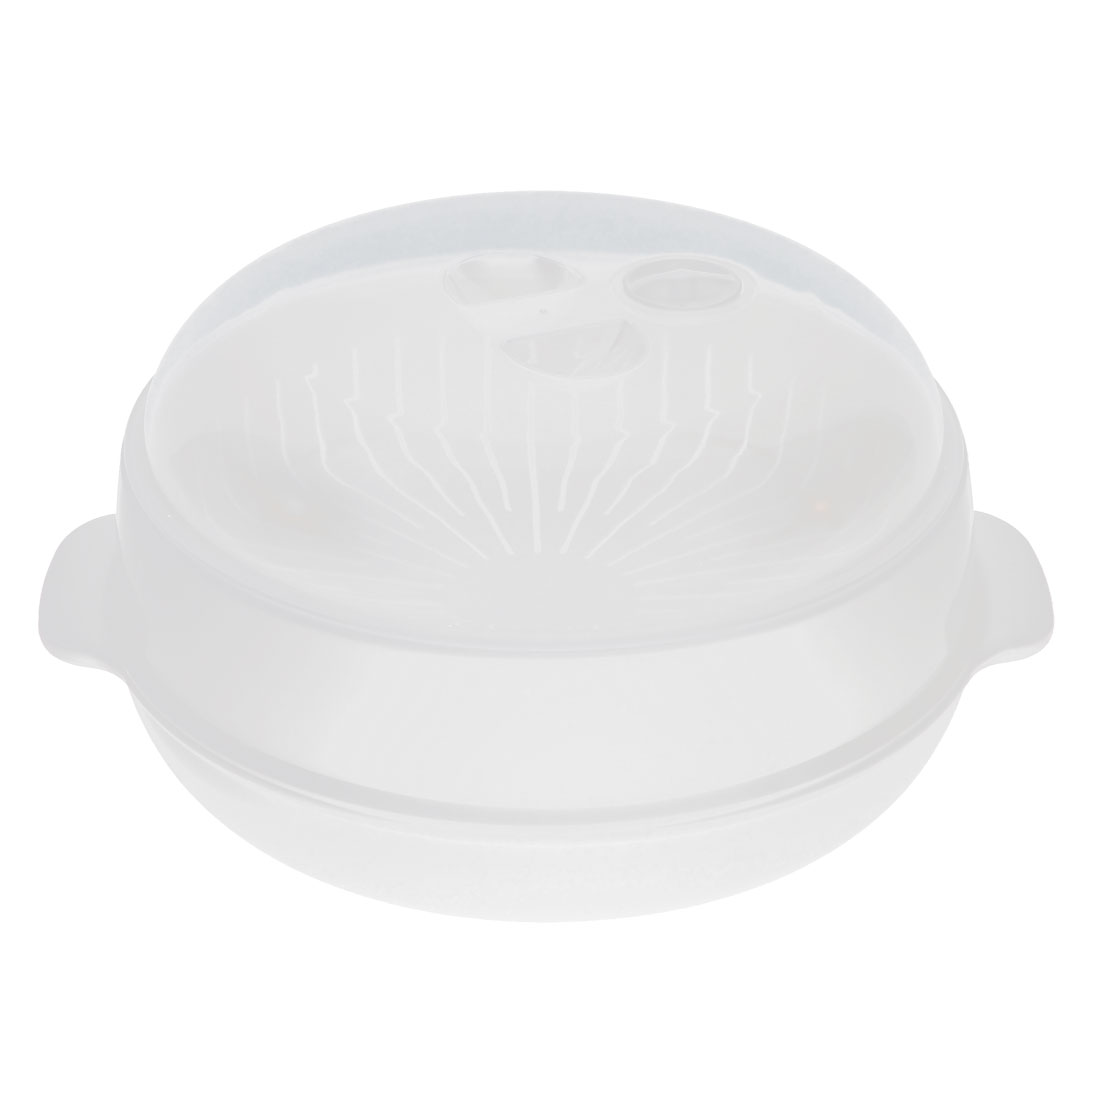 Plastic Round Home Kitchen Food Cooking Microwave Steamer White 7 Inch Dia